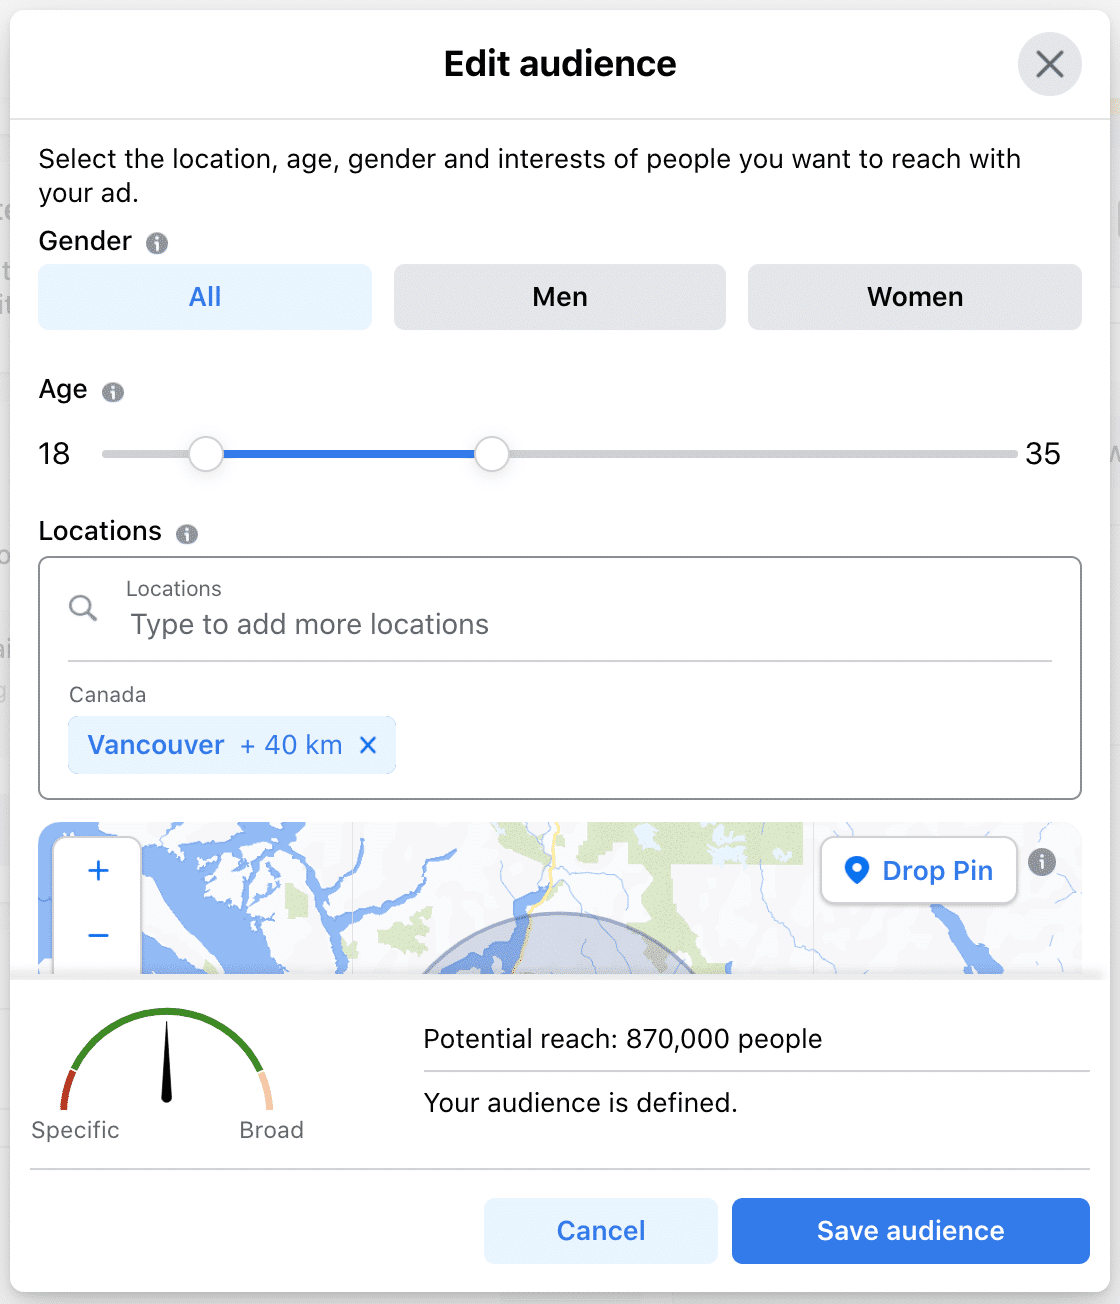 edit audience based on gender age and location